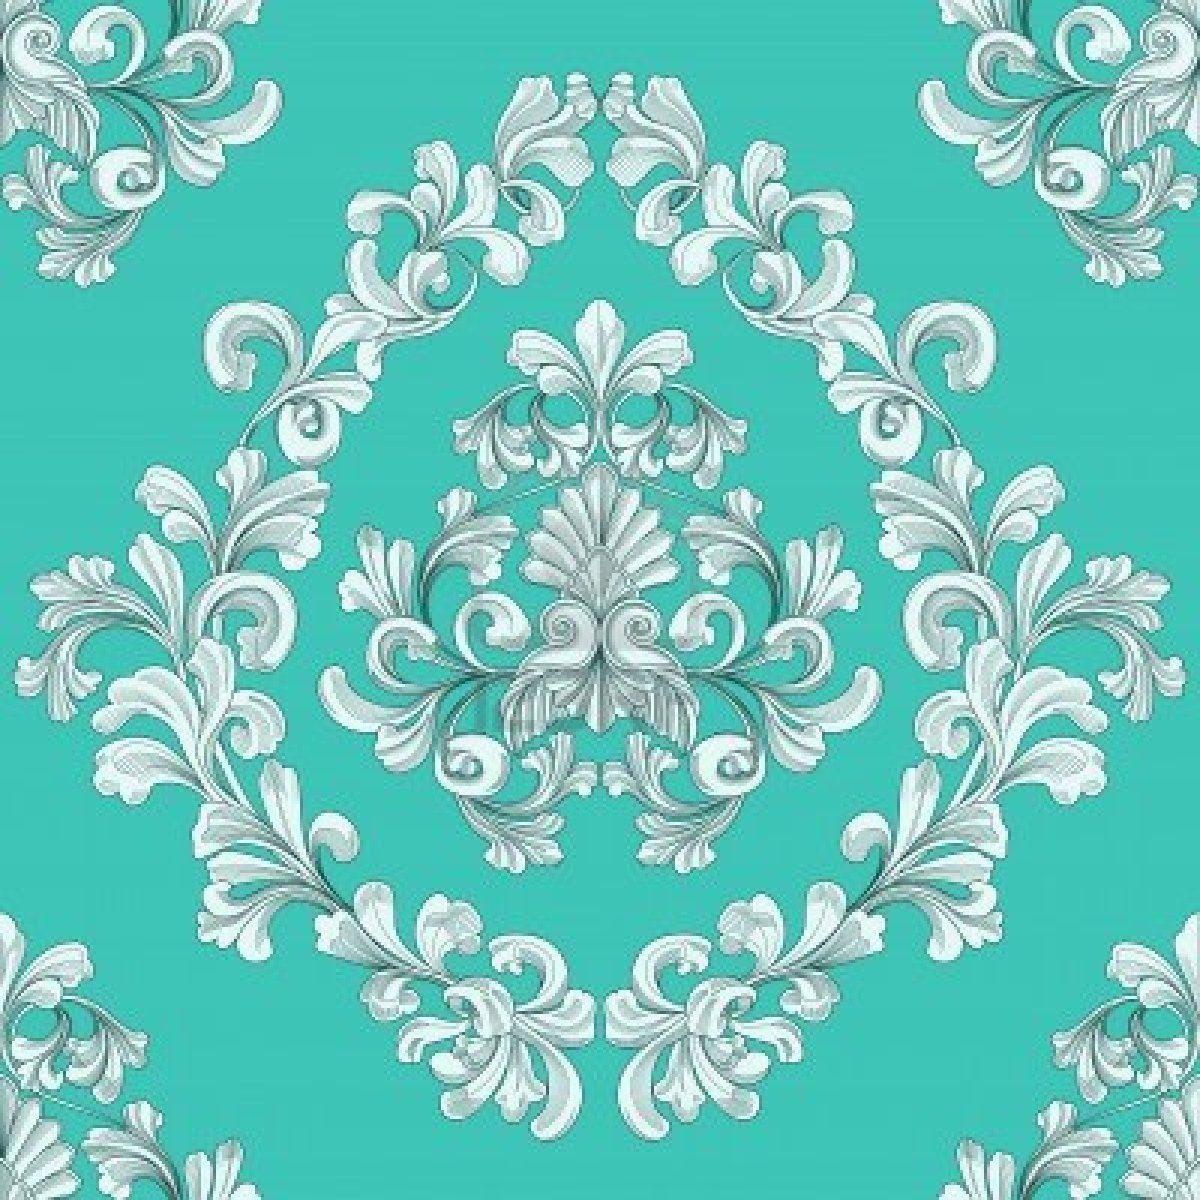 Floral victorian print patterns pinterest for Wallpaper prints patterns